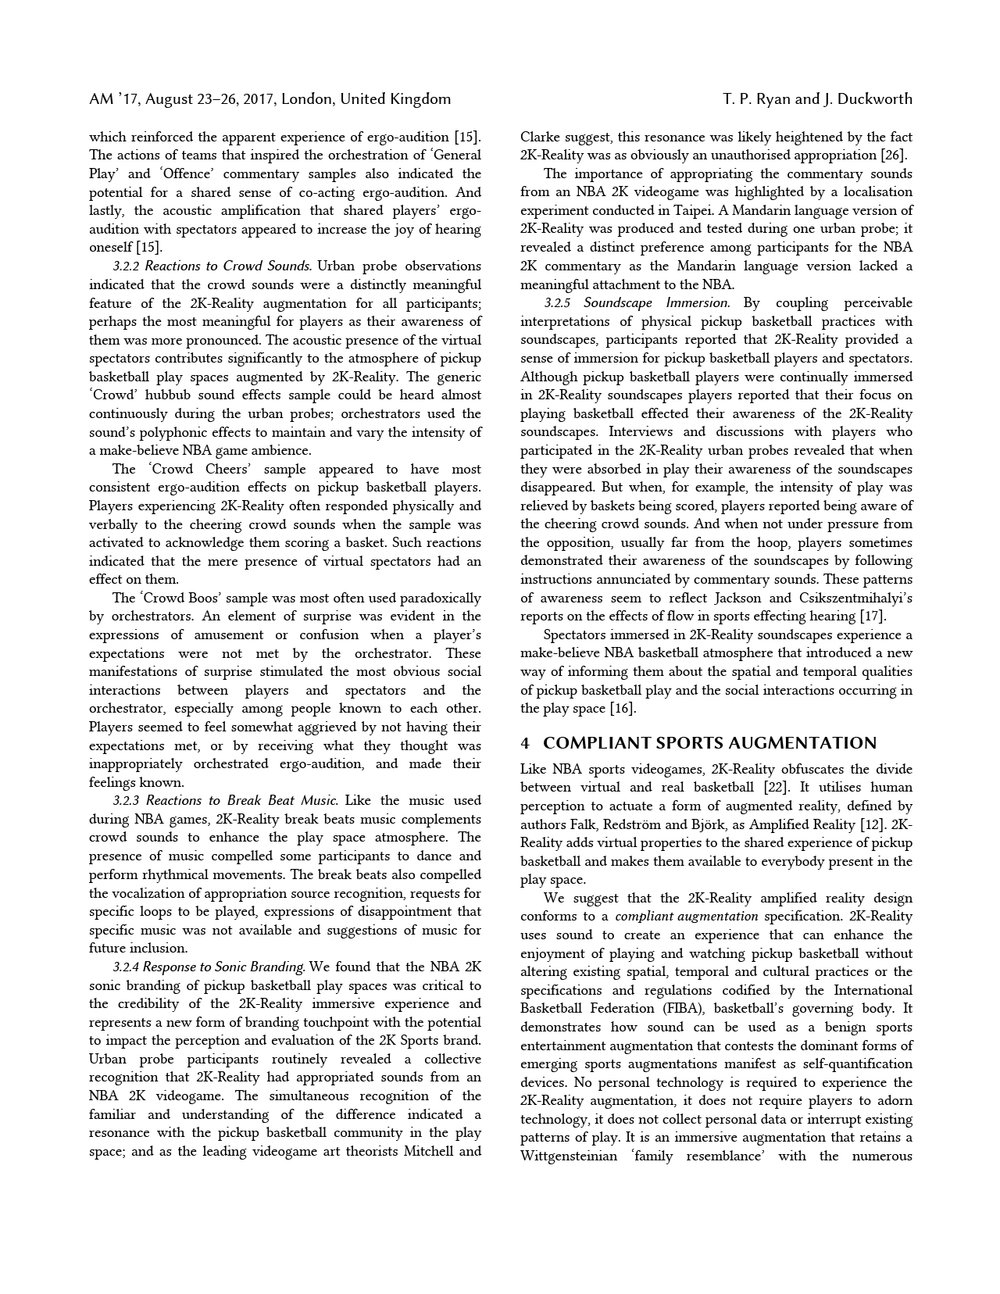 2K-Reality_AudioMostly'17 Paper-6.jpg